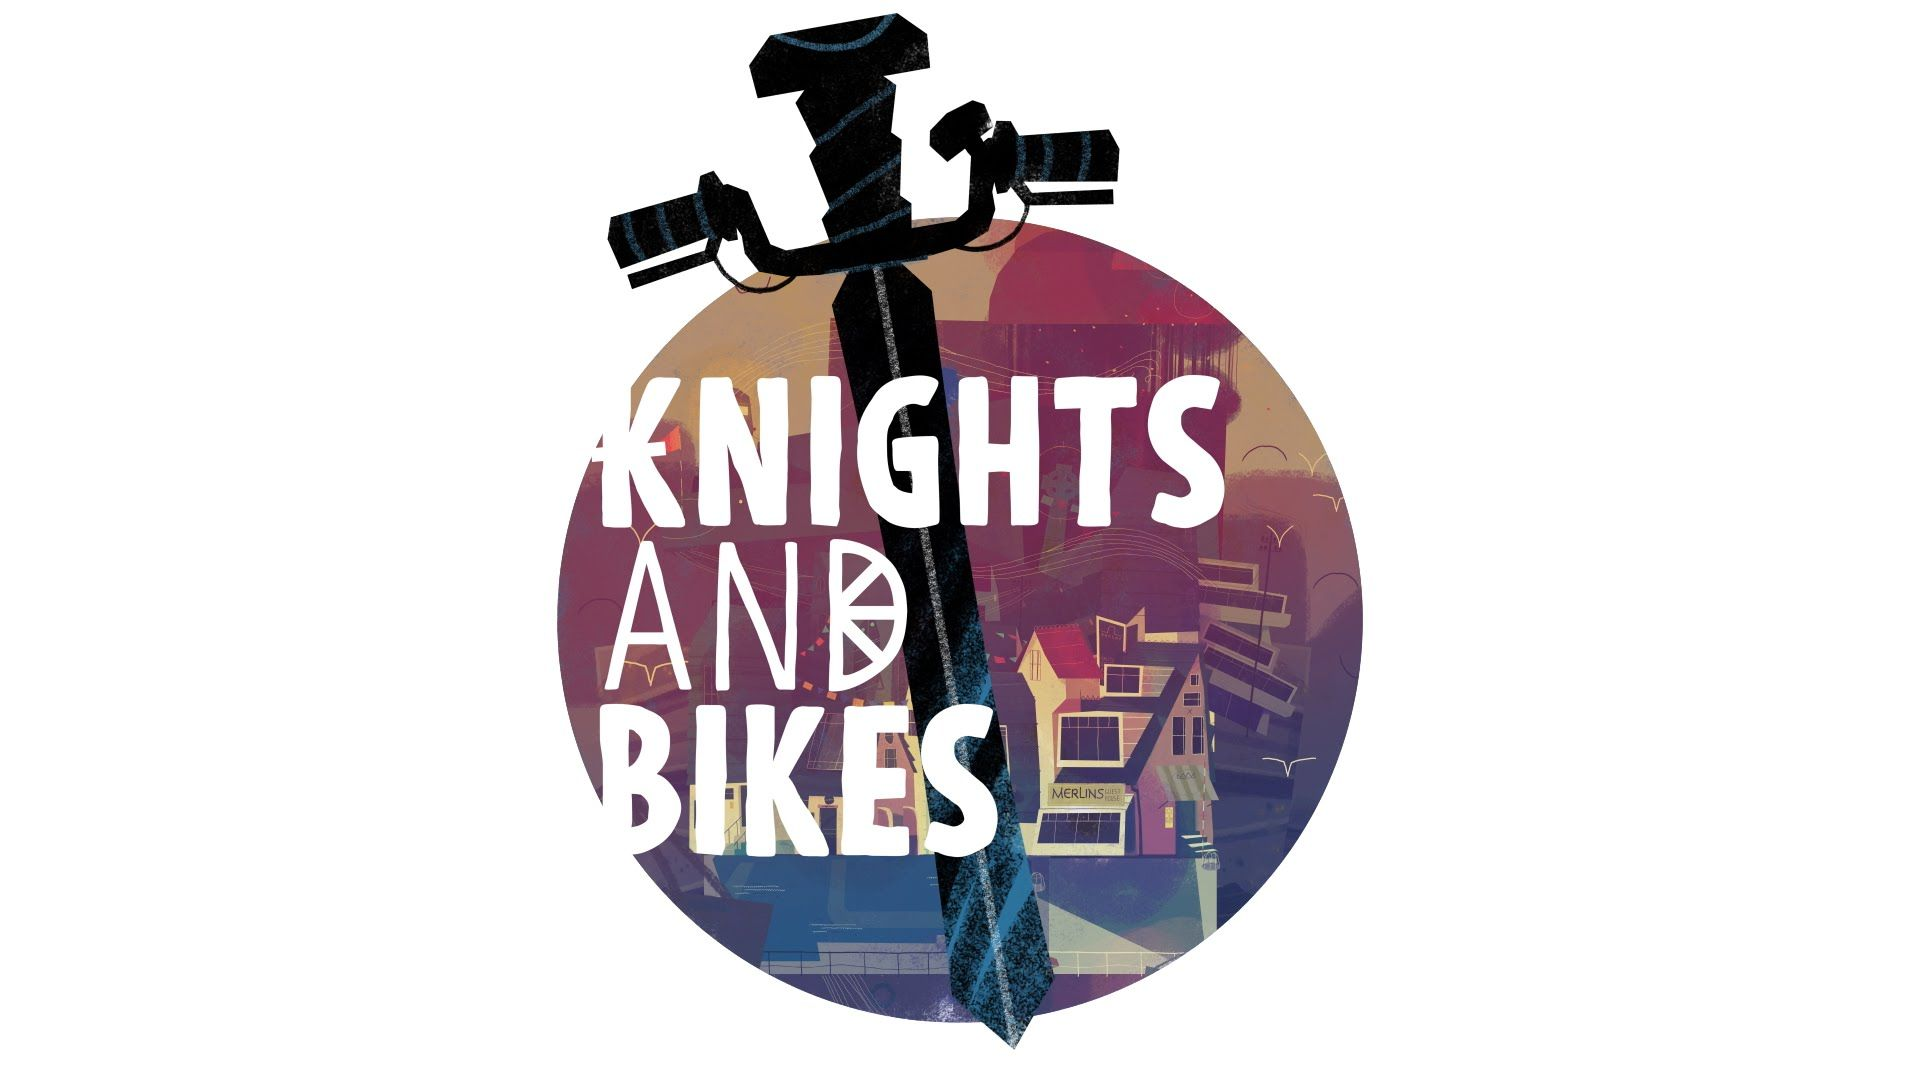 https://www.kickstarter.com/projects/foamsword/knights-and-bikes Knights and Bikes is a co-op action adventure game set in a beautifully hand painted 3D worl...